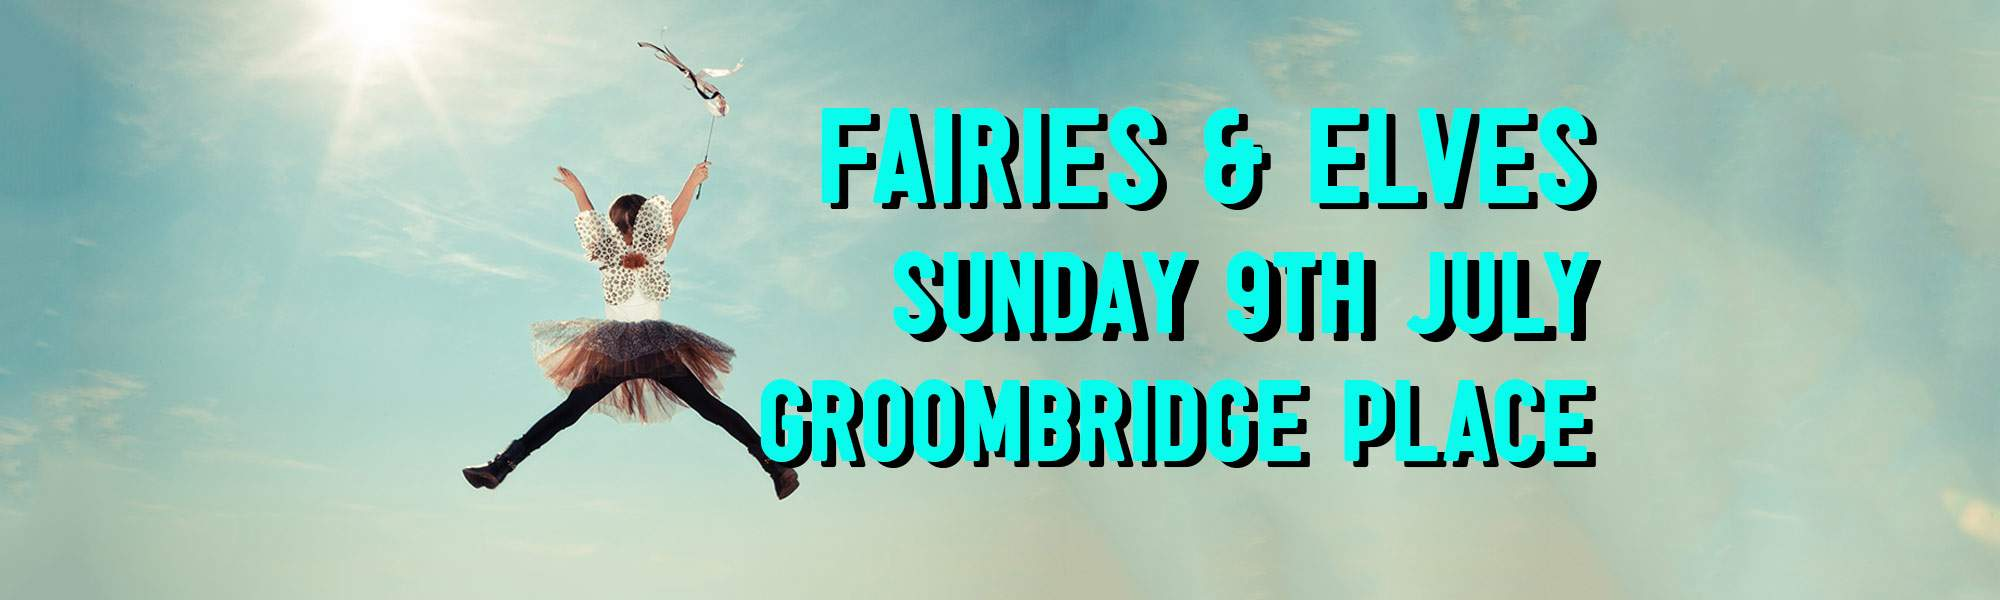 Little Bird Fairies & Elves at Groombridge Place - A Magical Woodland Adventure this July, 30% off